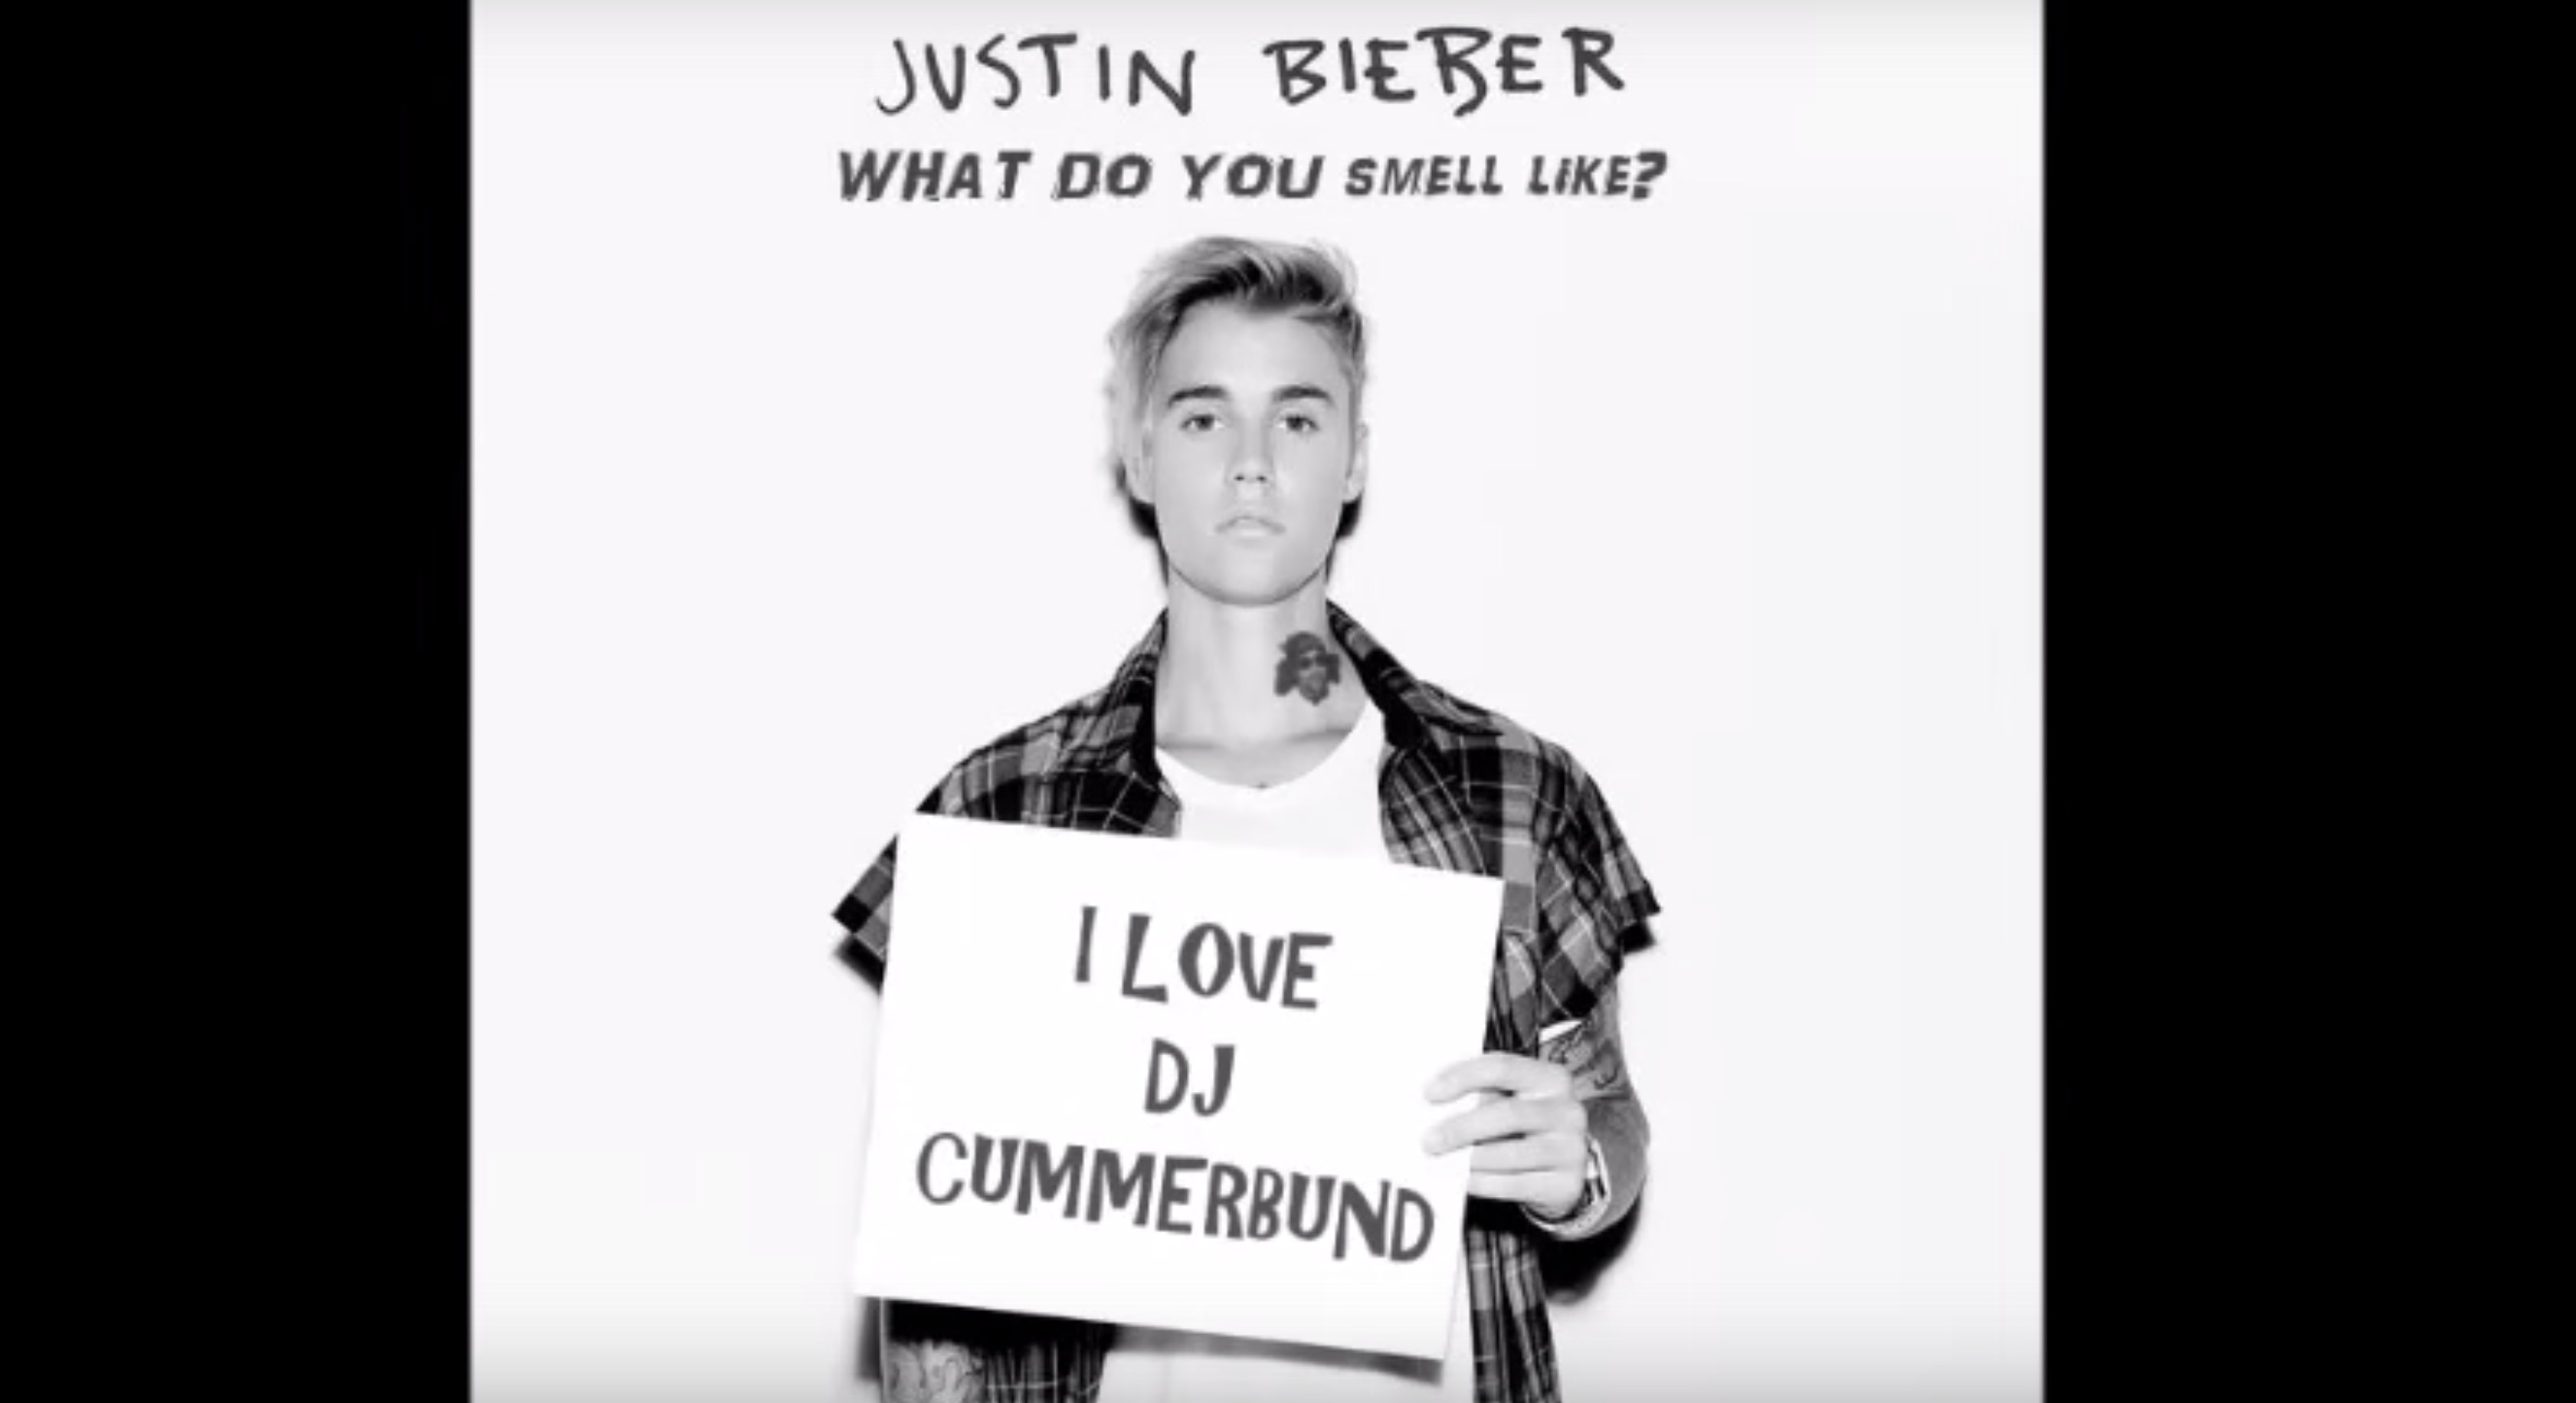 Here's that mashup of Justin Bieber and Nirvana (and a gazillion other artists)